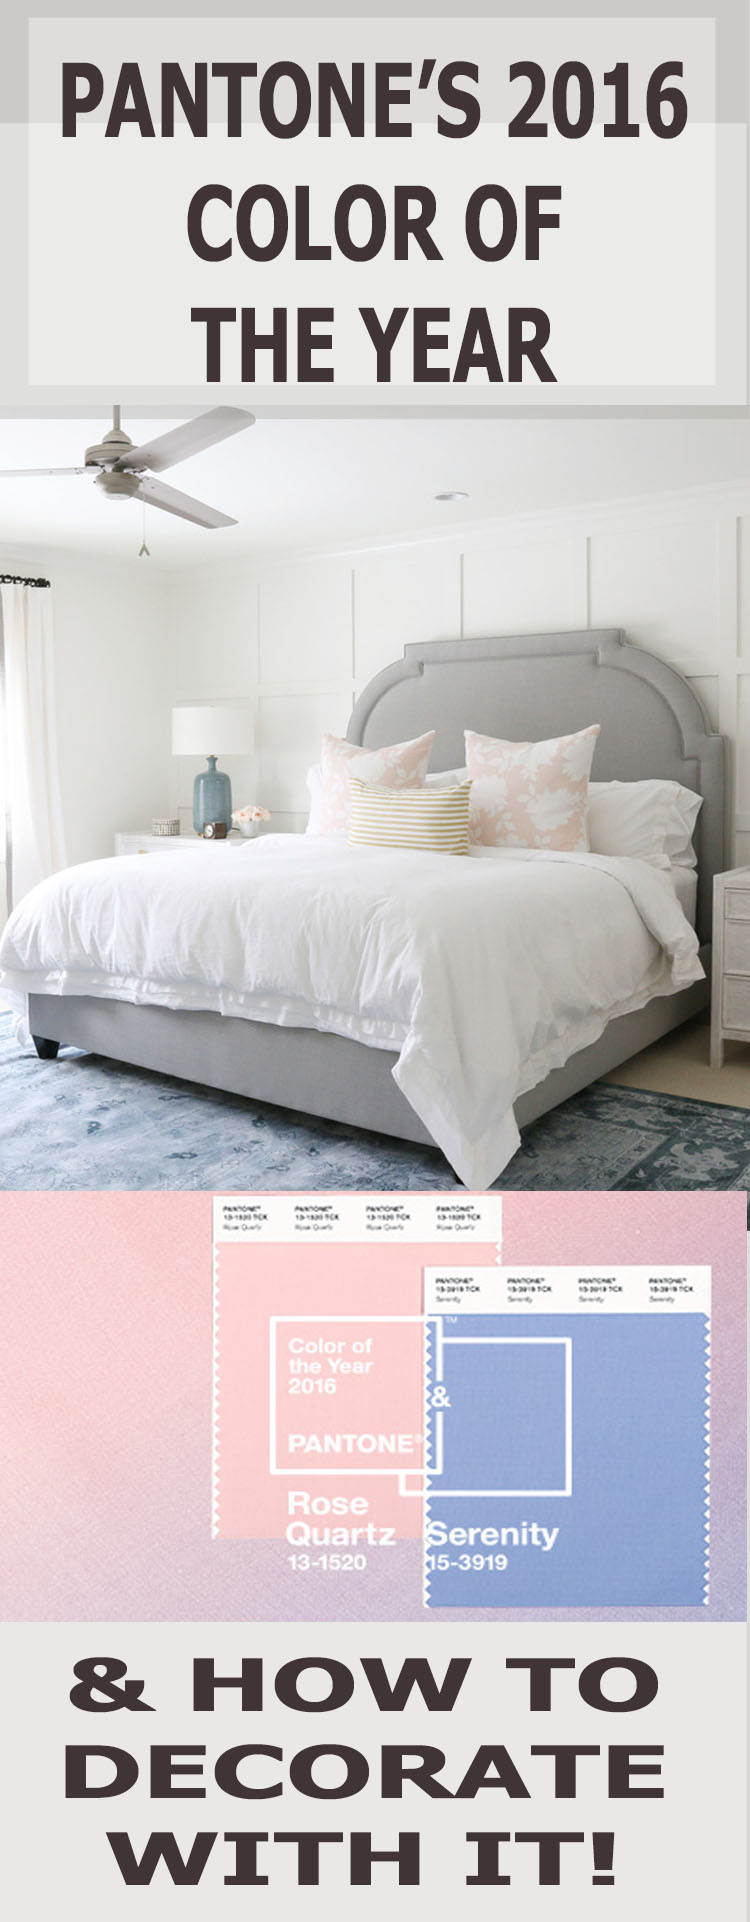 Pantone's 2016 Color of the Year